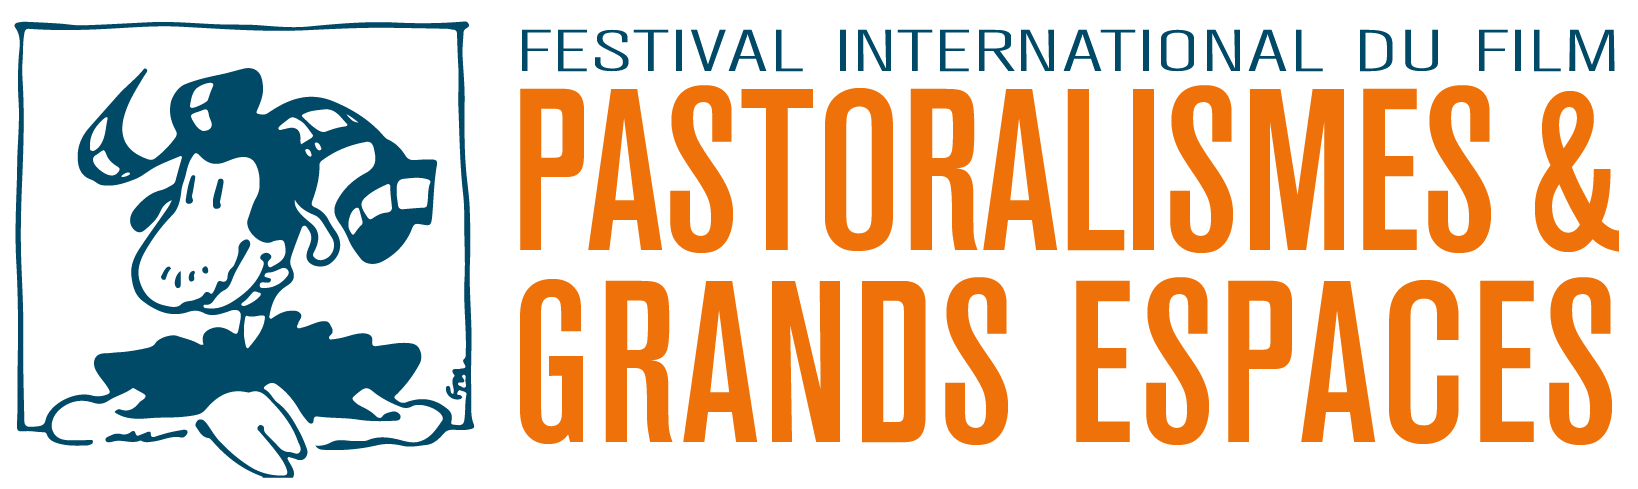 Festival international pastoralismes et grands espaces